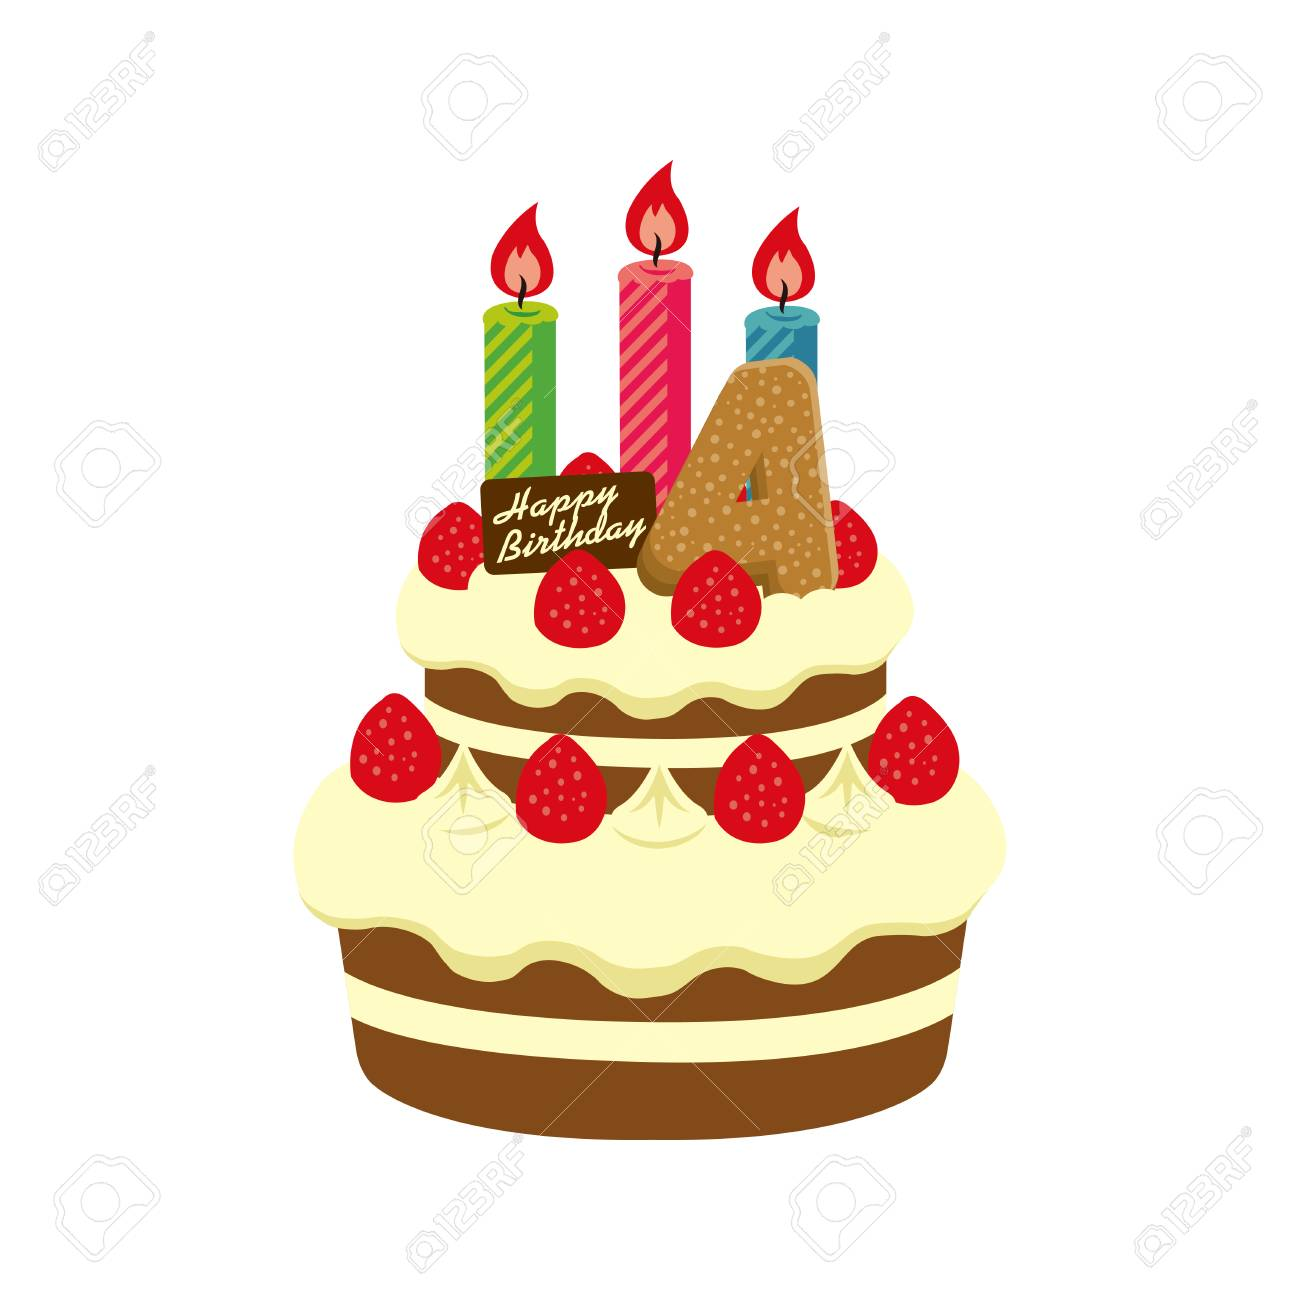 Strange Birthday Cake Illustration For 4 Years Old Royalty Free Cliparts Personalised Birthday Cards Veneteletsinfo